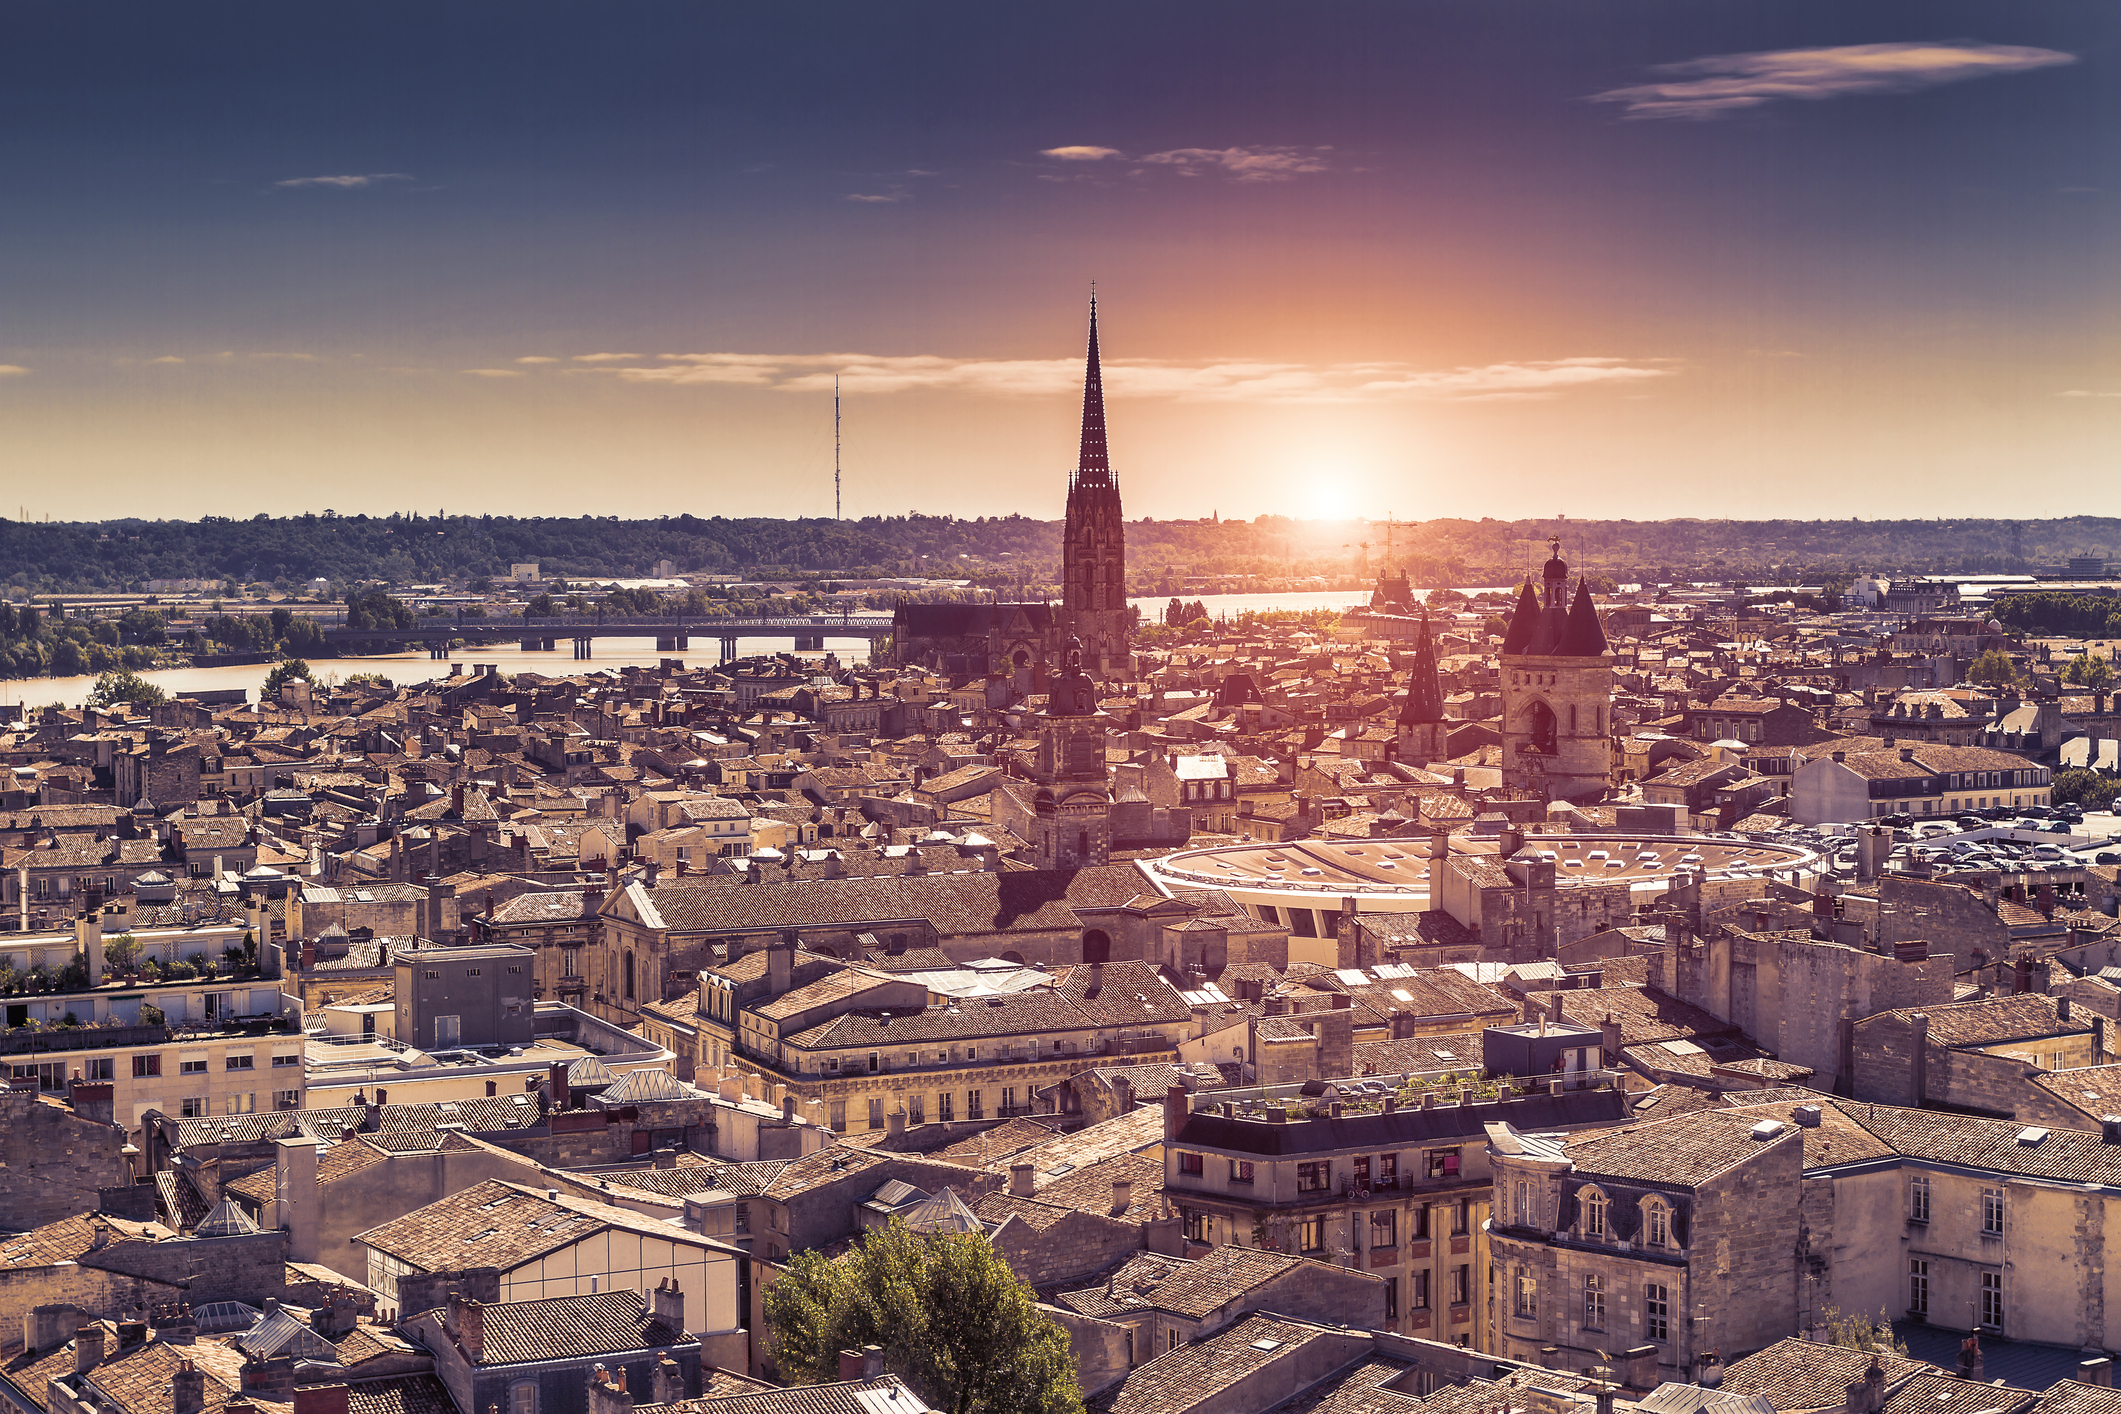 Aerial view of Bordeaux at sunset - France